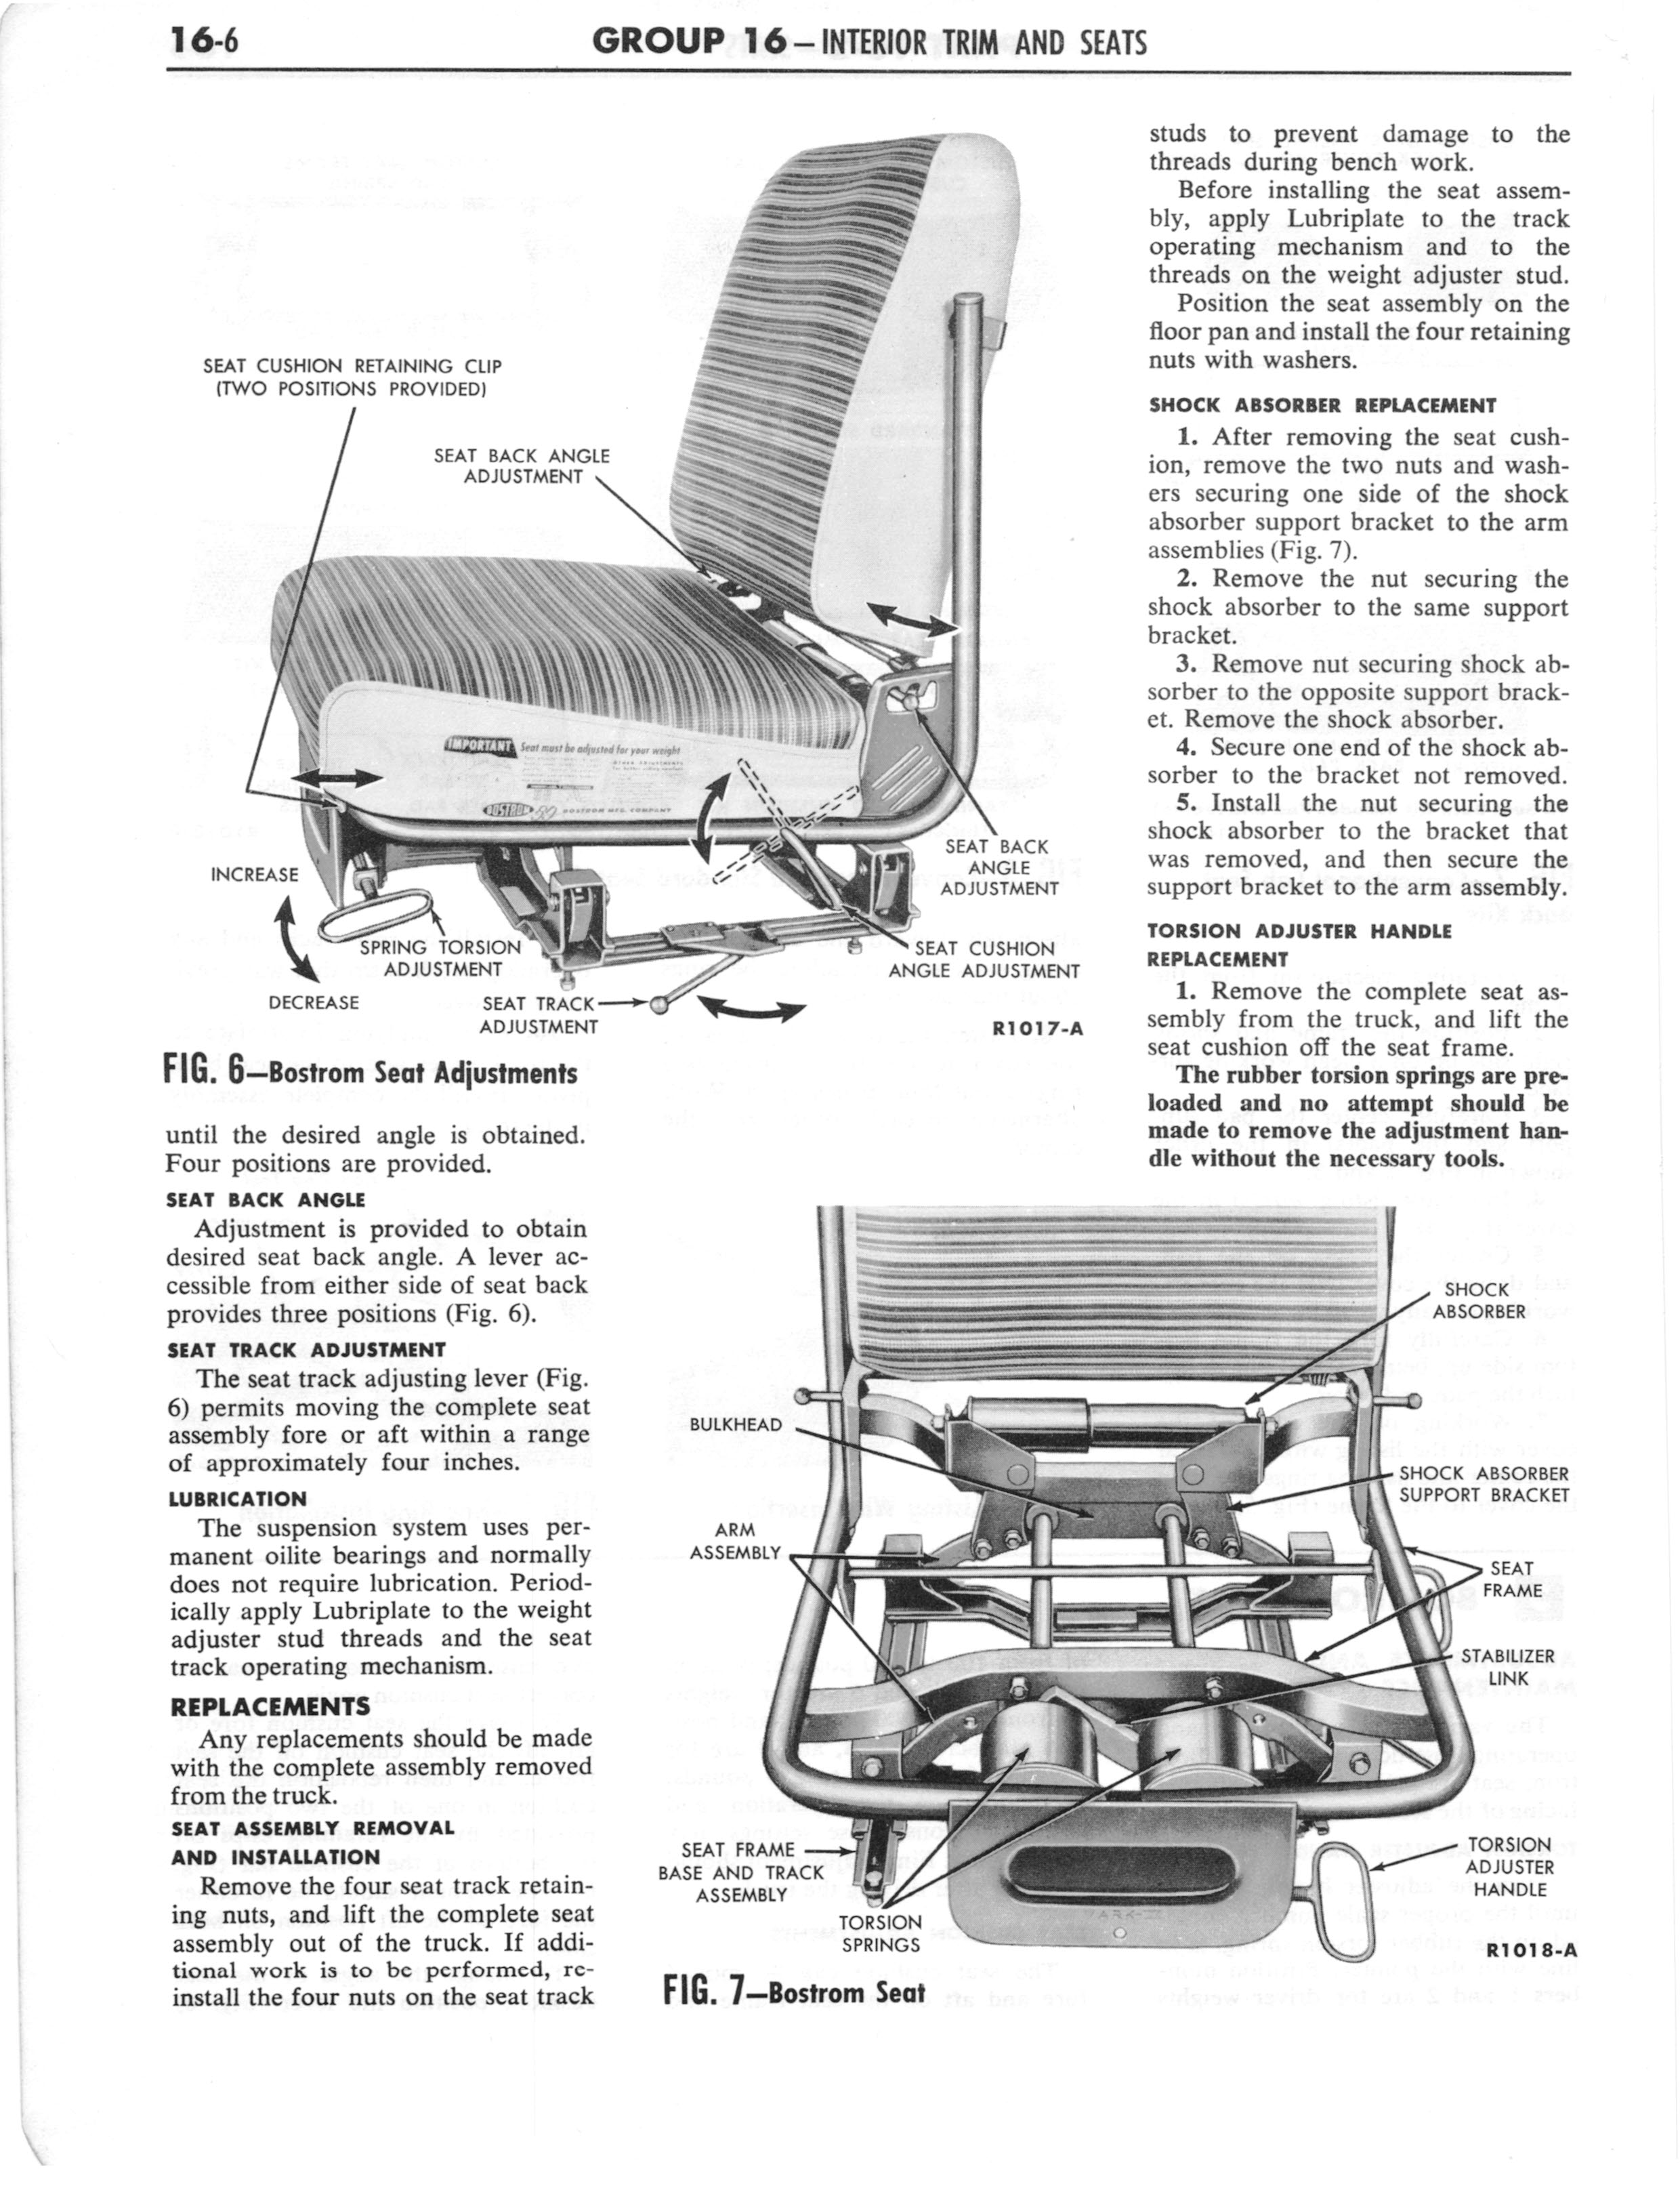 1960 Ford and Mercury Truck Shop Manual page 617 of 641